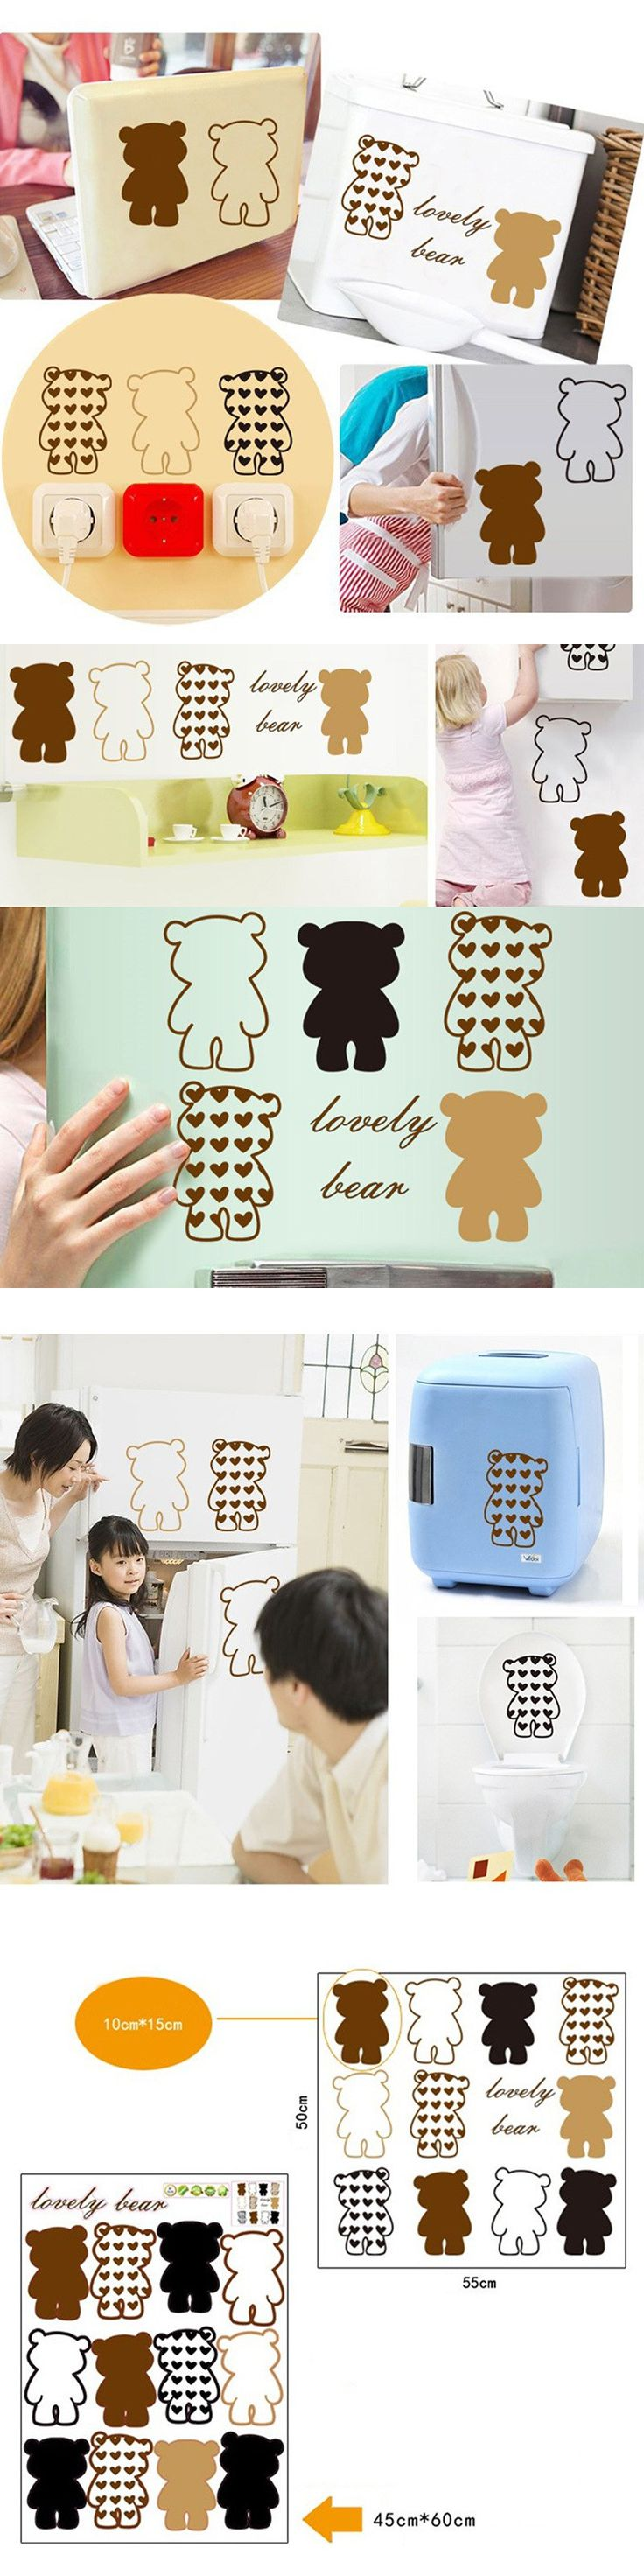 DIY Novelty Toilet Seat Lid Cover Sticker Cute Animal Bear Toilet Seat Decal Sticker Car Stickers Switch Wall Decals Home Decor $6.19